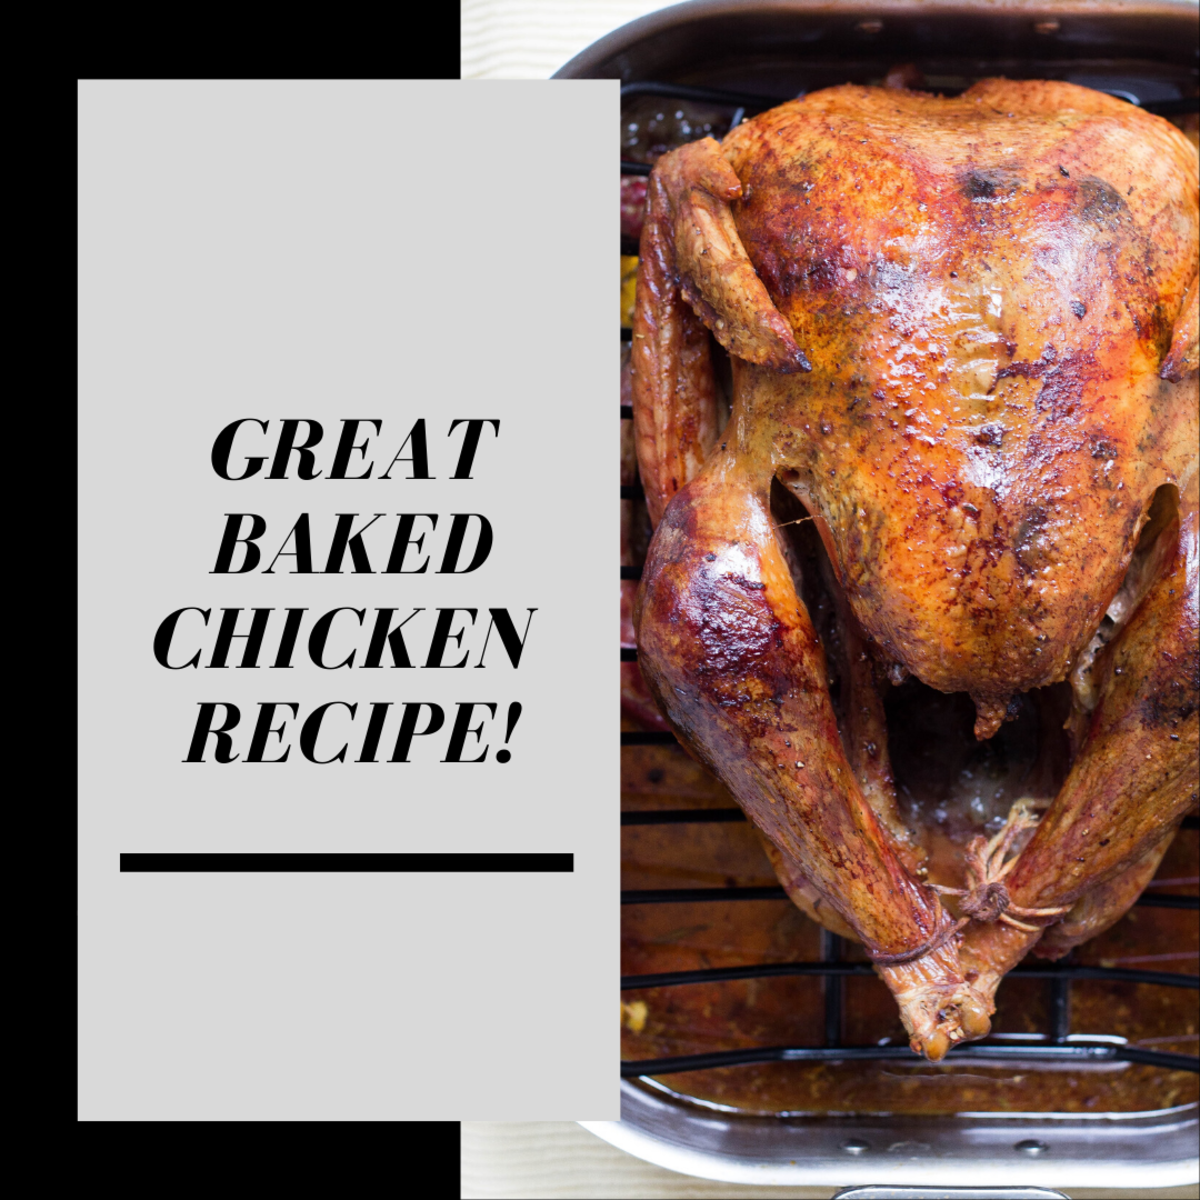 This amazing baked chicken recipe is perfect for any occasion.